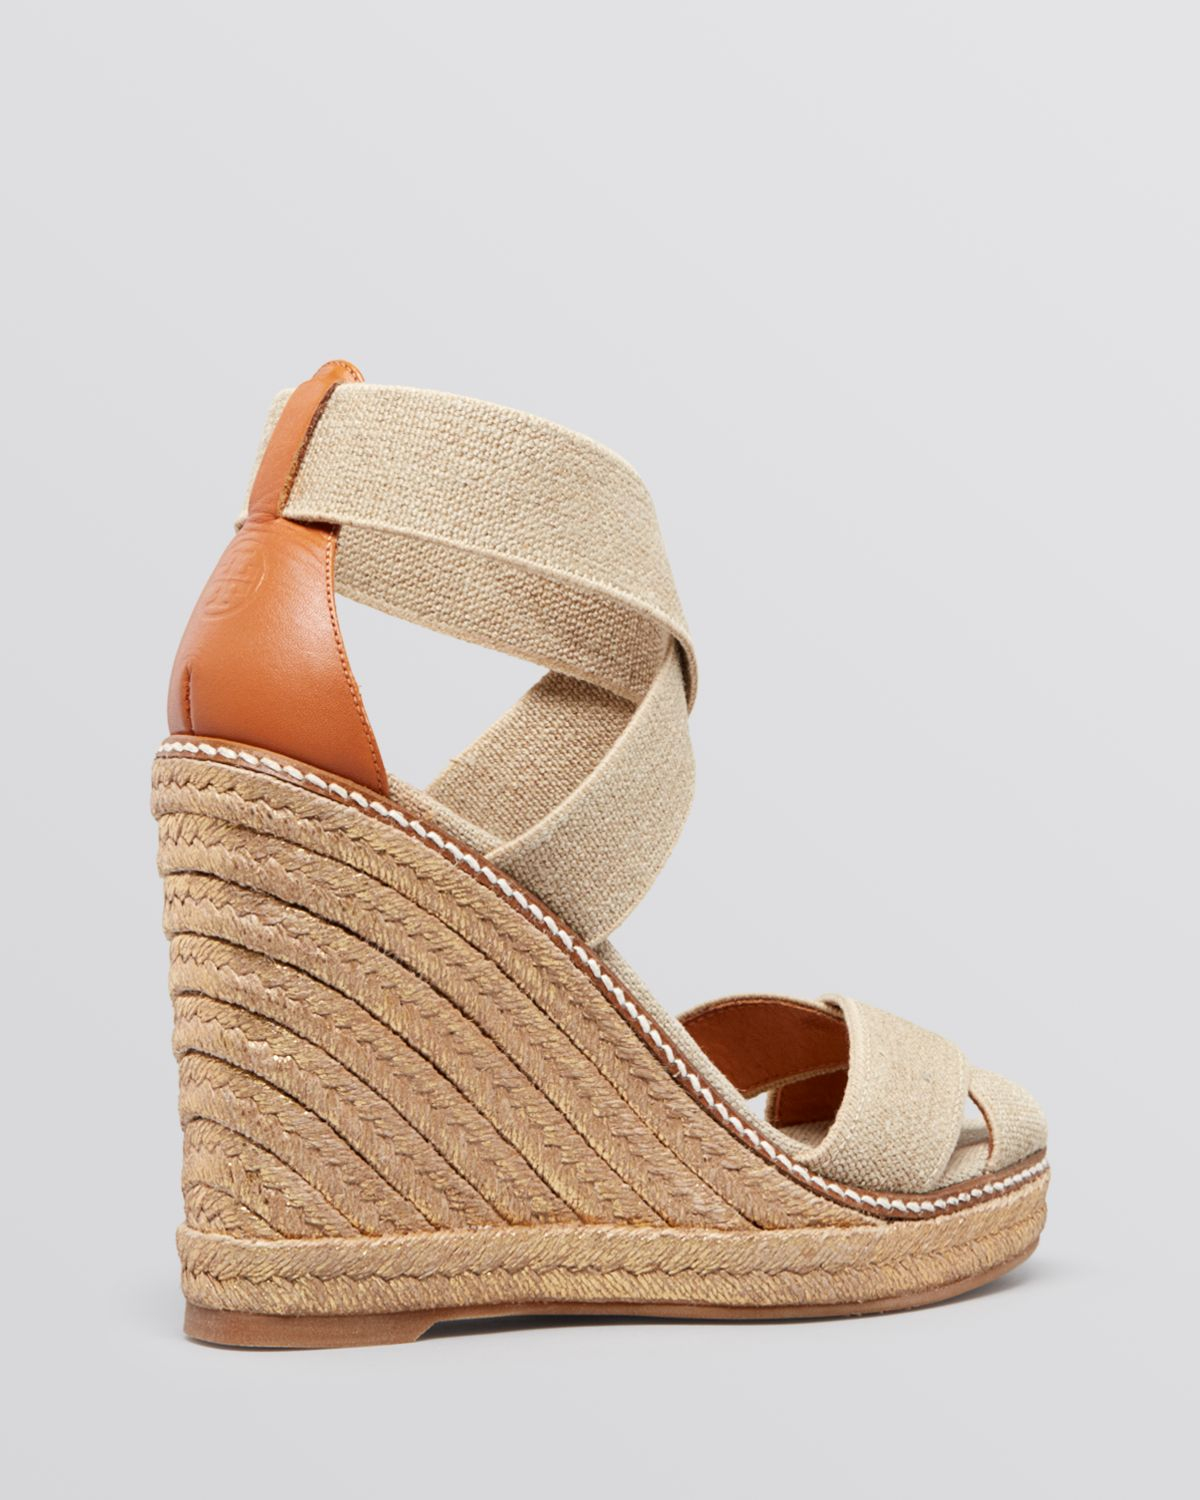 Lyst Tory Burch Platform Wedge Espadrille Sandals Adonis